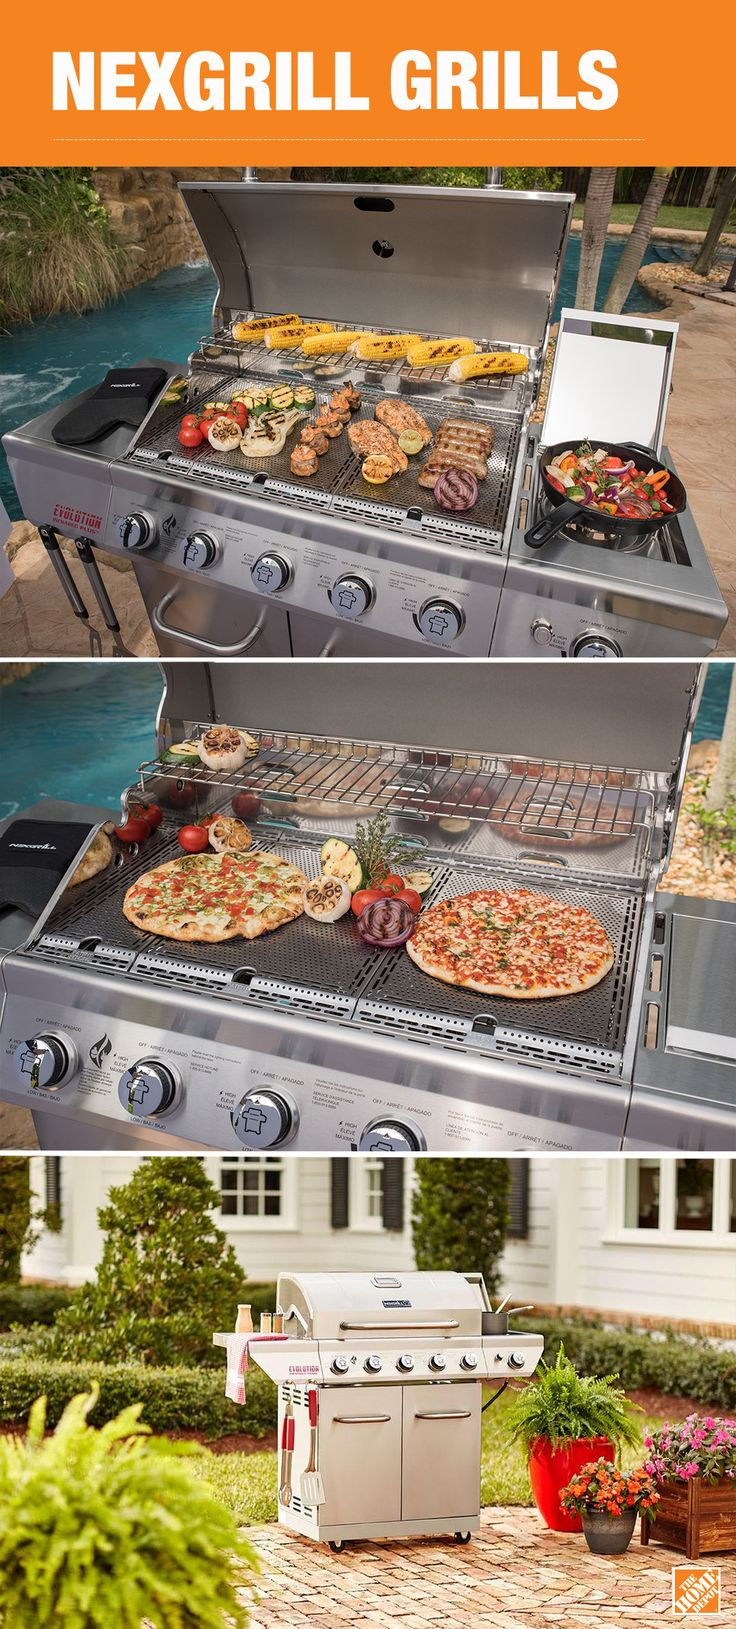 Here's one of the most versatile grills available. You can sear, smoke or sauté to perfection all on a single gas Nexgrill equipped with Evolution Infrared Technology. Position the ingenious infrared plates in the grill to create indirect heat for broiling, baking or smoking. Use the gas burners for traditional direct-heat grilling. This 5-burner gas grill also has a side burner for even more outdoor cooking options. See our entire line of innovative and affordable Nexgrills at The Home…